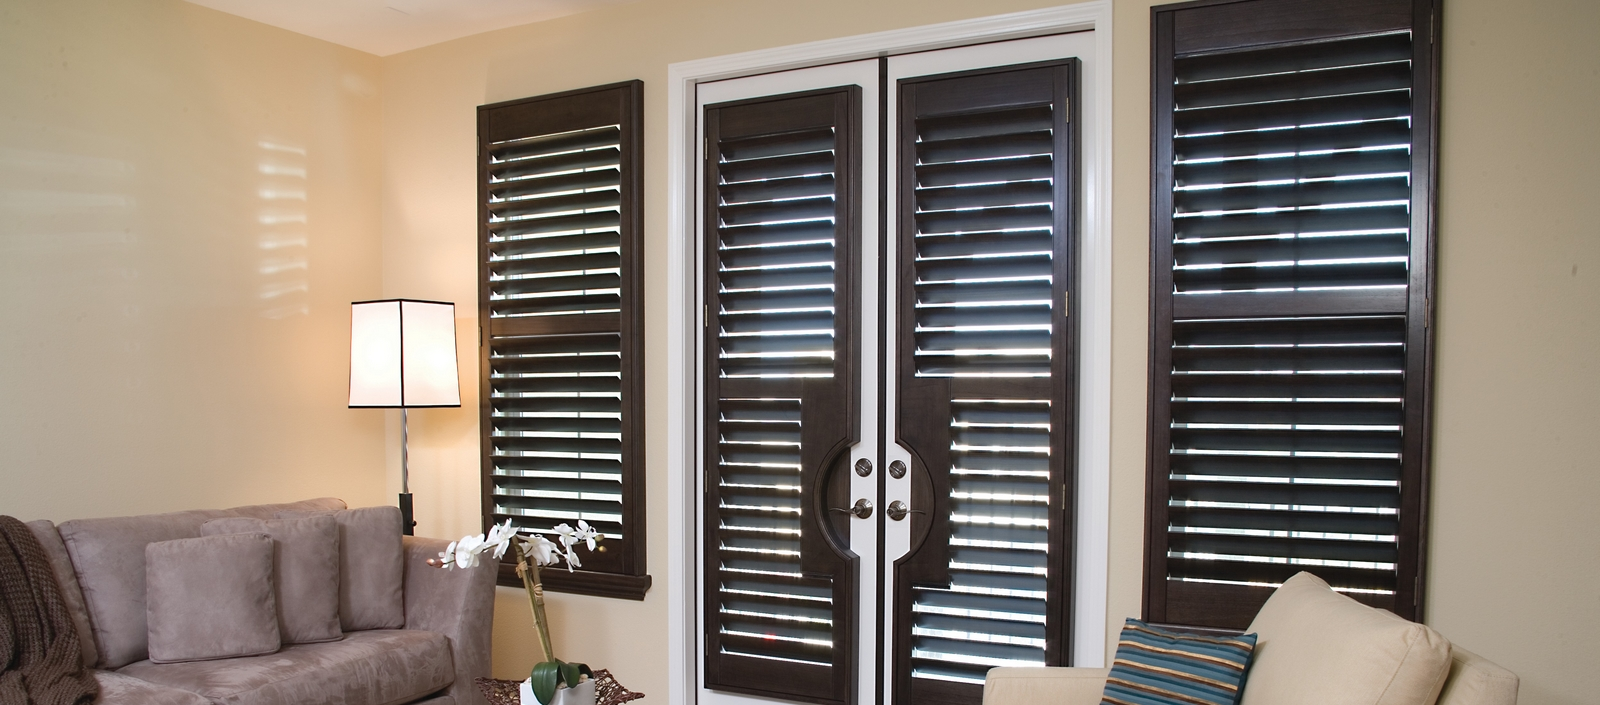 Comfy Invisible Tilt Blinds Invisible Tilt Blinds Zionsville Norman Window Fashions Youtube Norman Window Fashions Blinds houzz-03 Norman Window Fashions